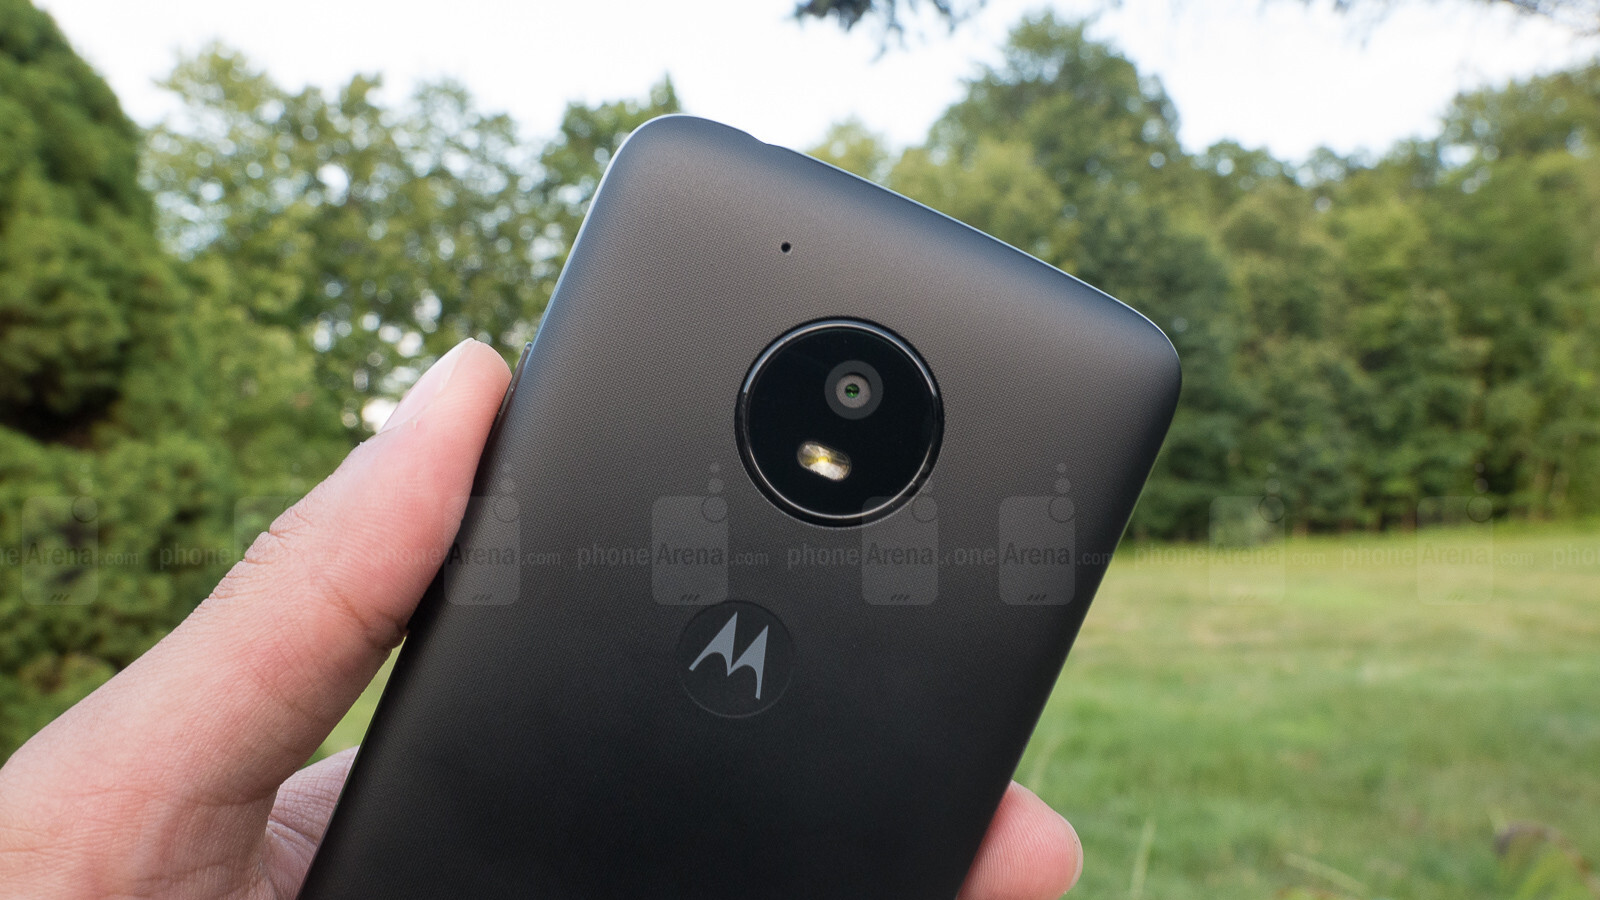 Dc5m United States It In English Created At 2018 04 13 0225 424 X 253 Png 19kb Open Circuit And Short Test On Transformer The Upcoming Moto G6 Play Has Appeared Yet Another Set Of Hands Images Its No Secret That Motorola Plans To Launch New Line Within A